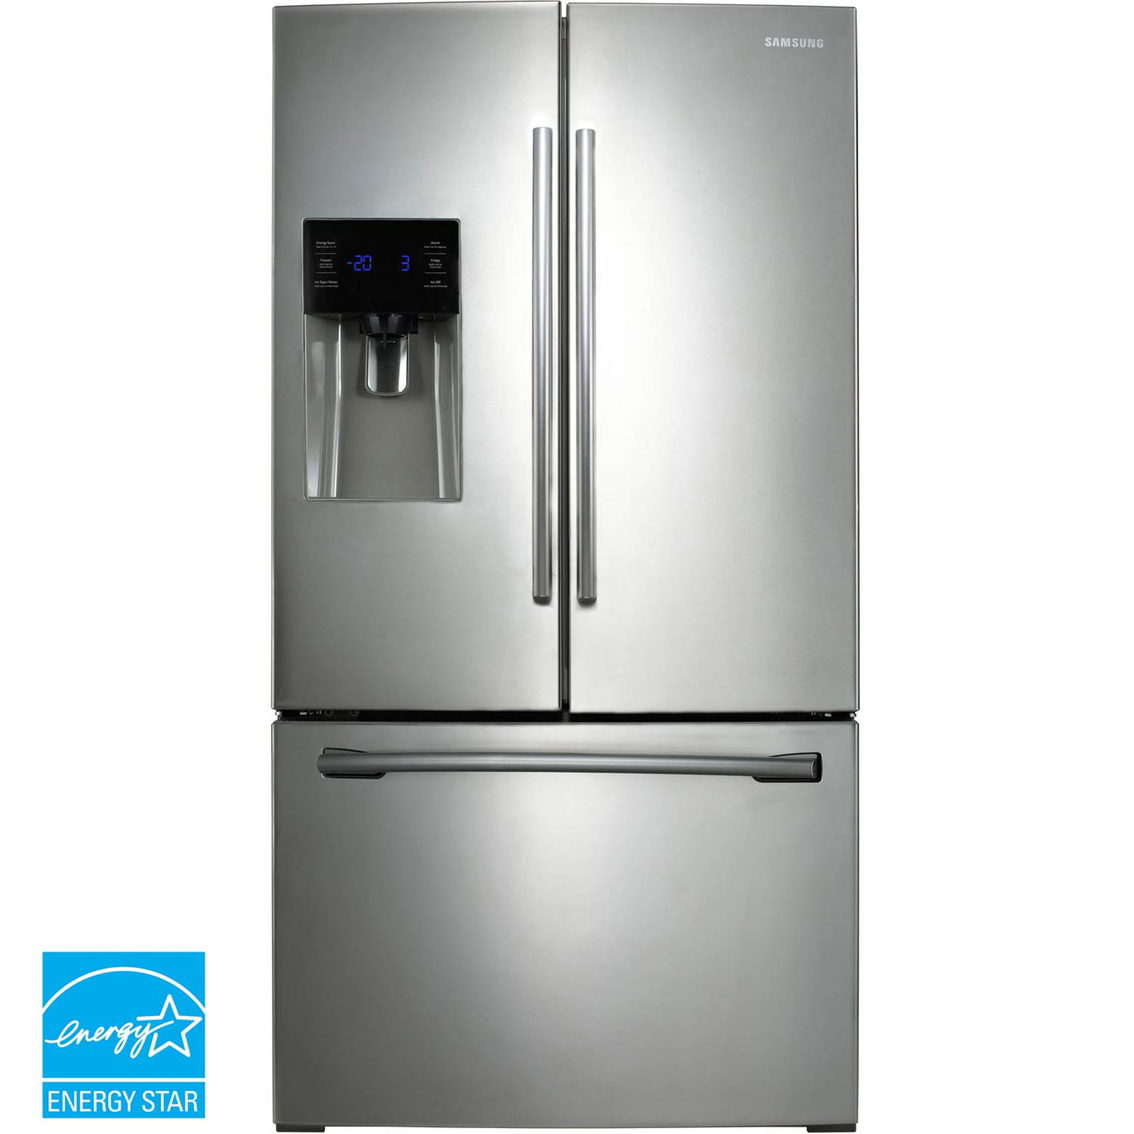 Samsung 25 cu ft french door refrigerator with external water samsung 25 cu ft french door refrigerator with external water and ice dispenser rubansaba